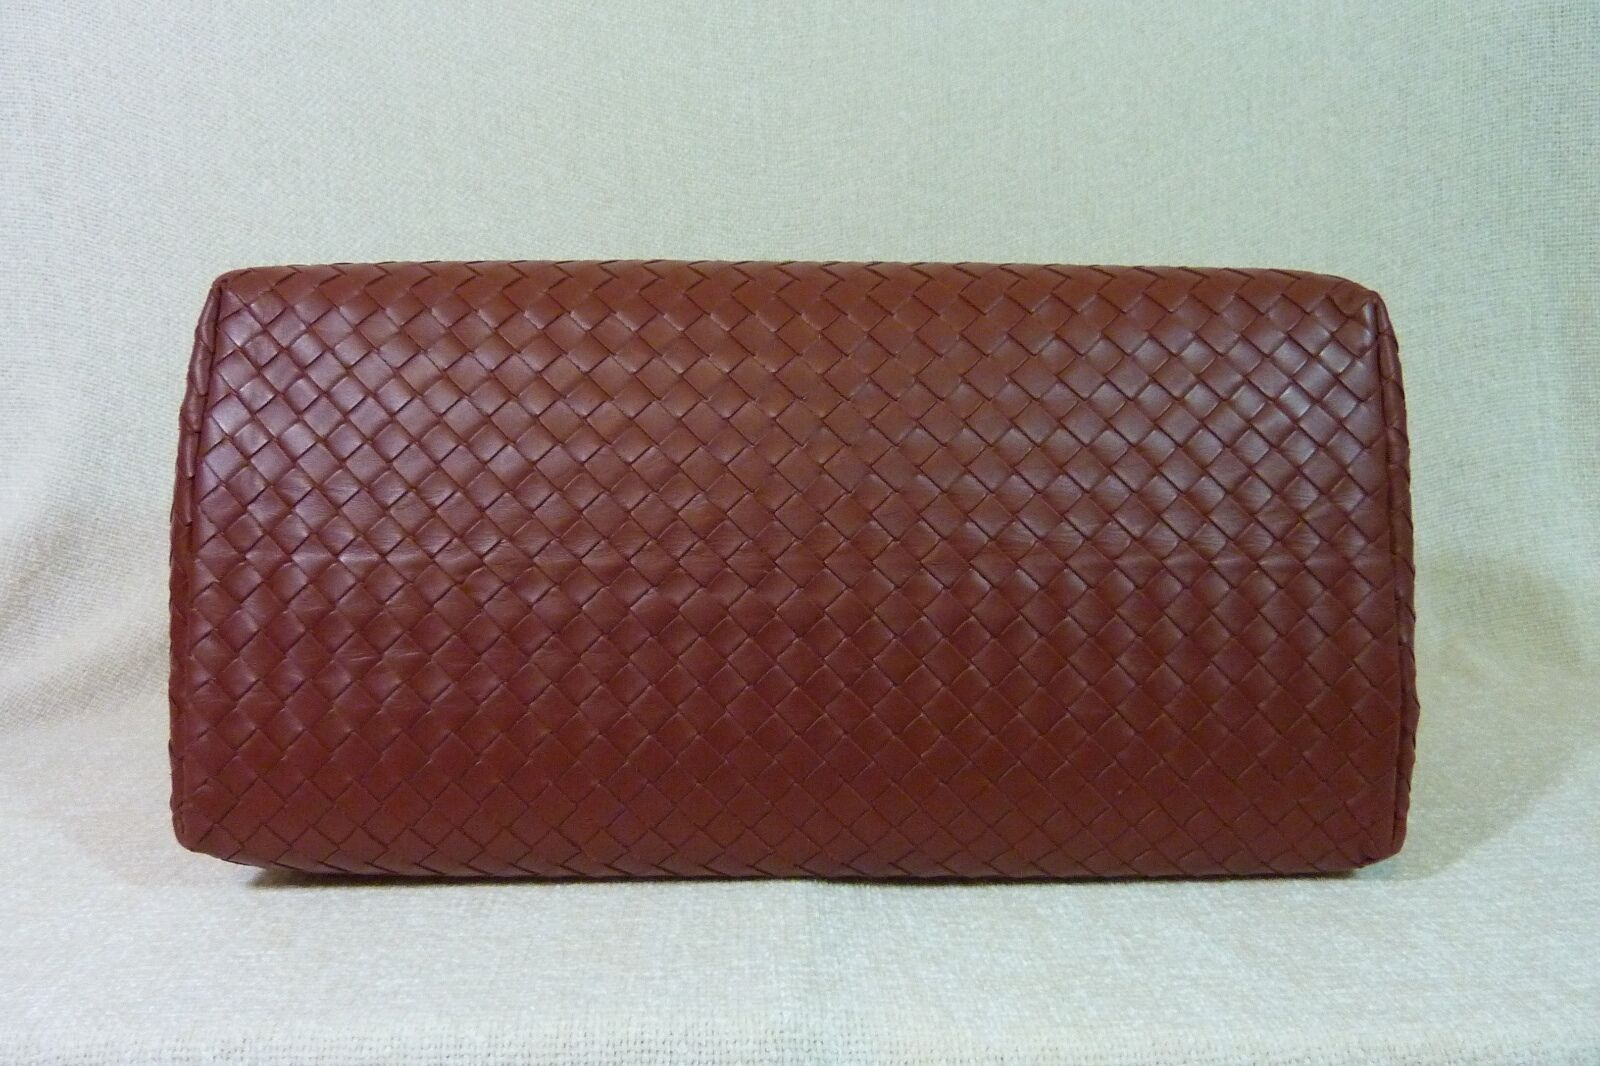 AUTH NWT Bottega Veneta Medium Roma Bag In Russet Intrecciato Calf Leather image 8